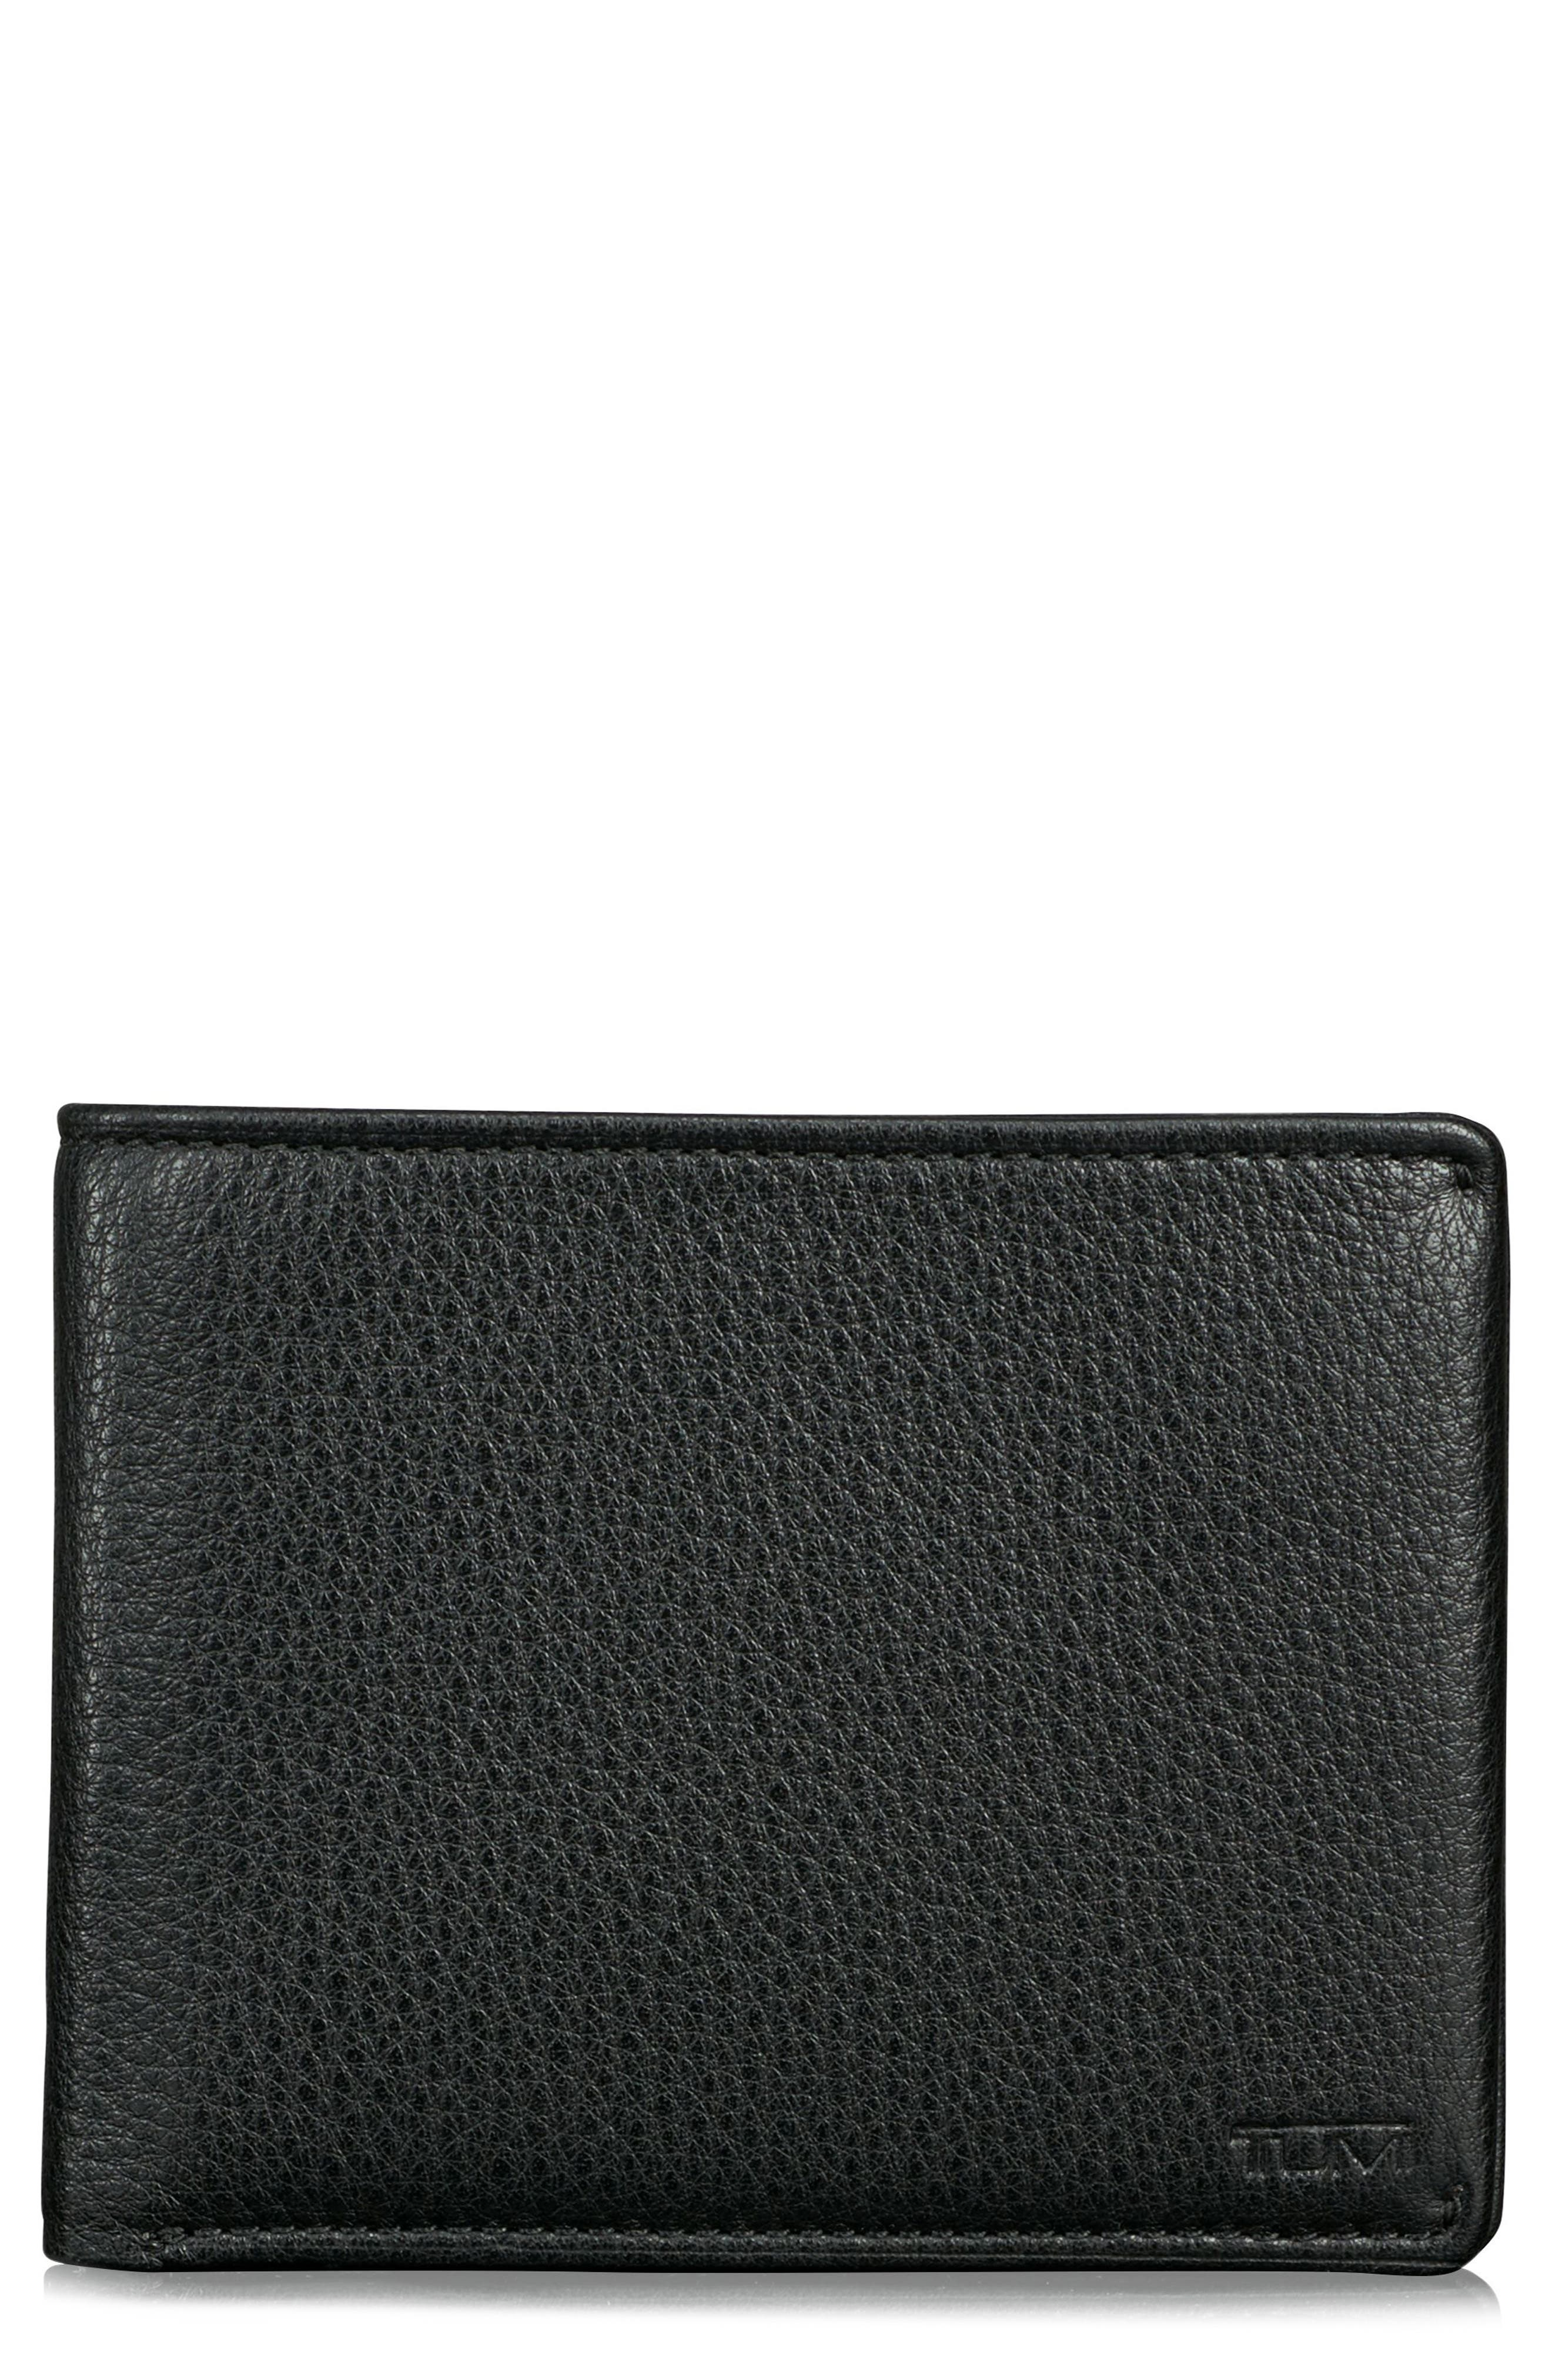 Global Leather RFID Wallet,                             Main thumbnail 1, color,                             BLACK TEXTURED